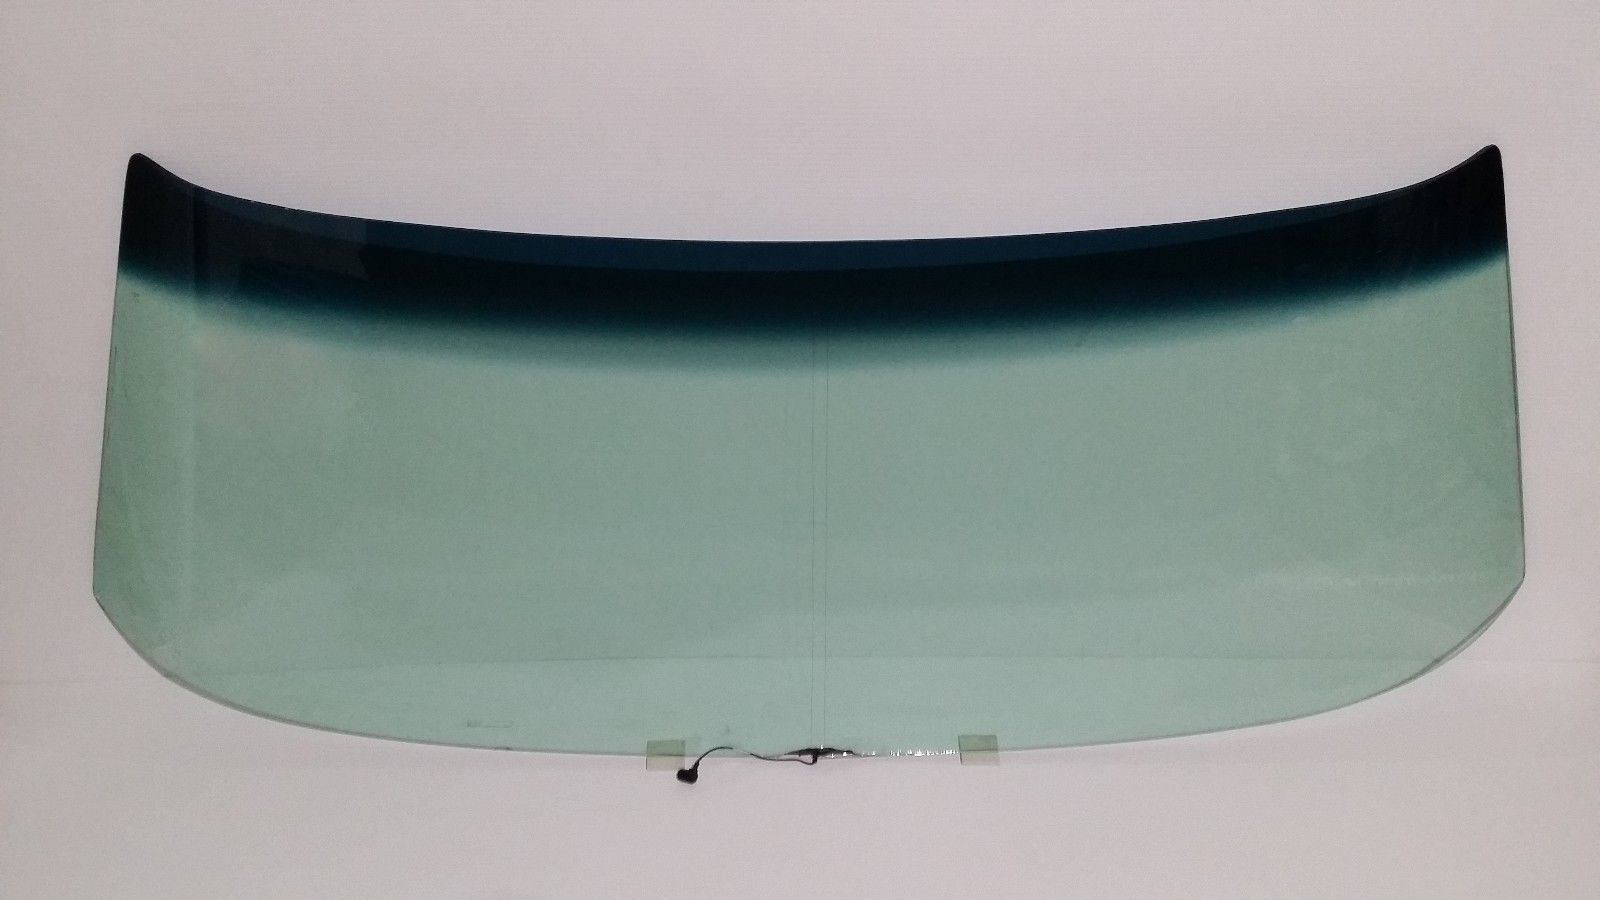 1970 - 1972 Chevelle, Skylark, Cutlass, Lemans windshield 4 Dr sedan, wagon